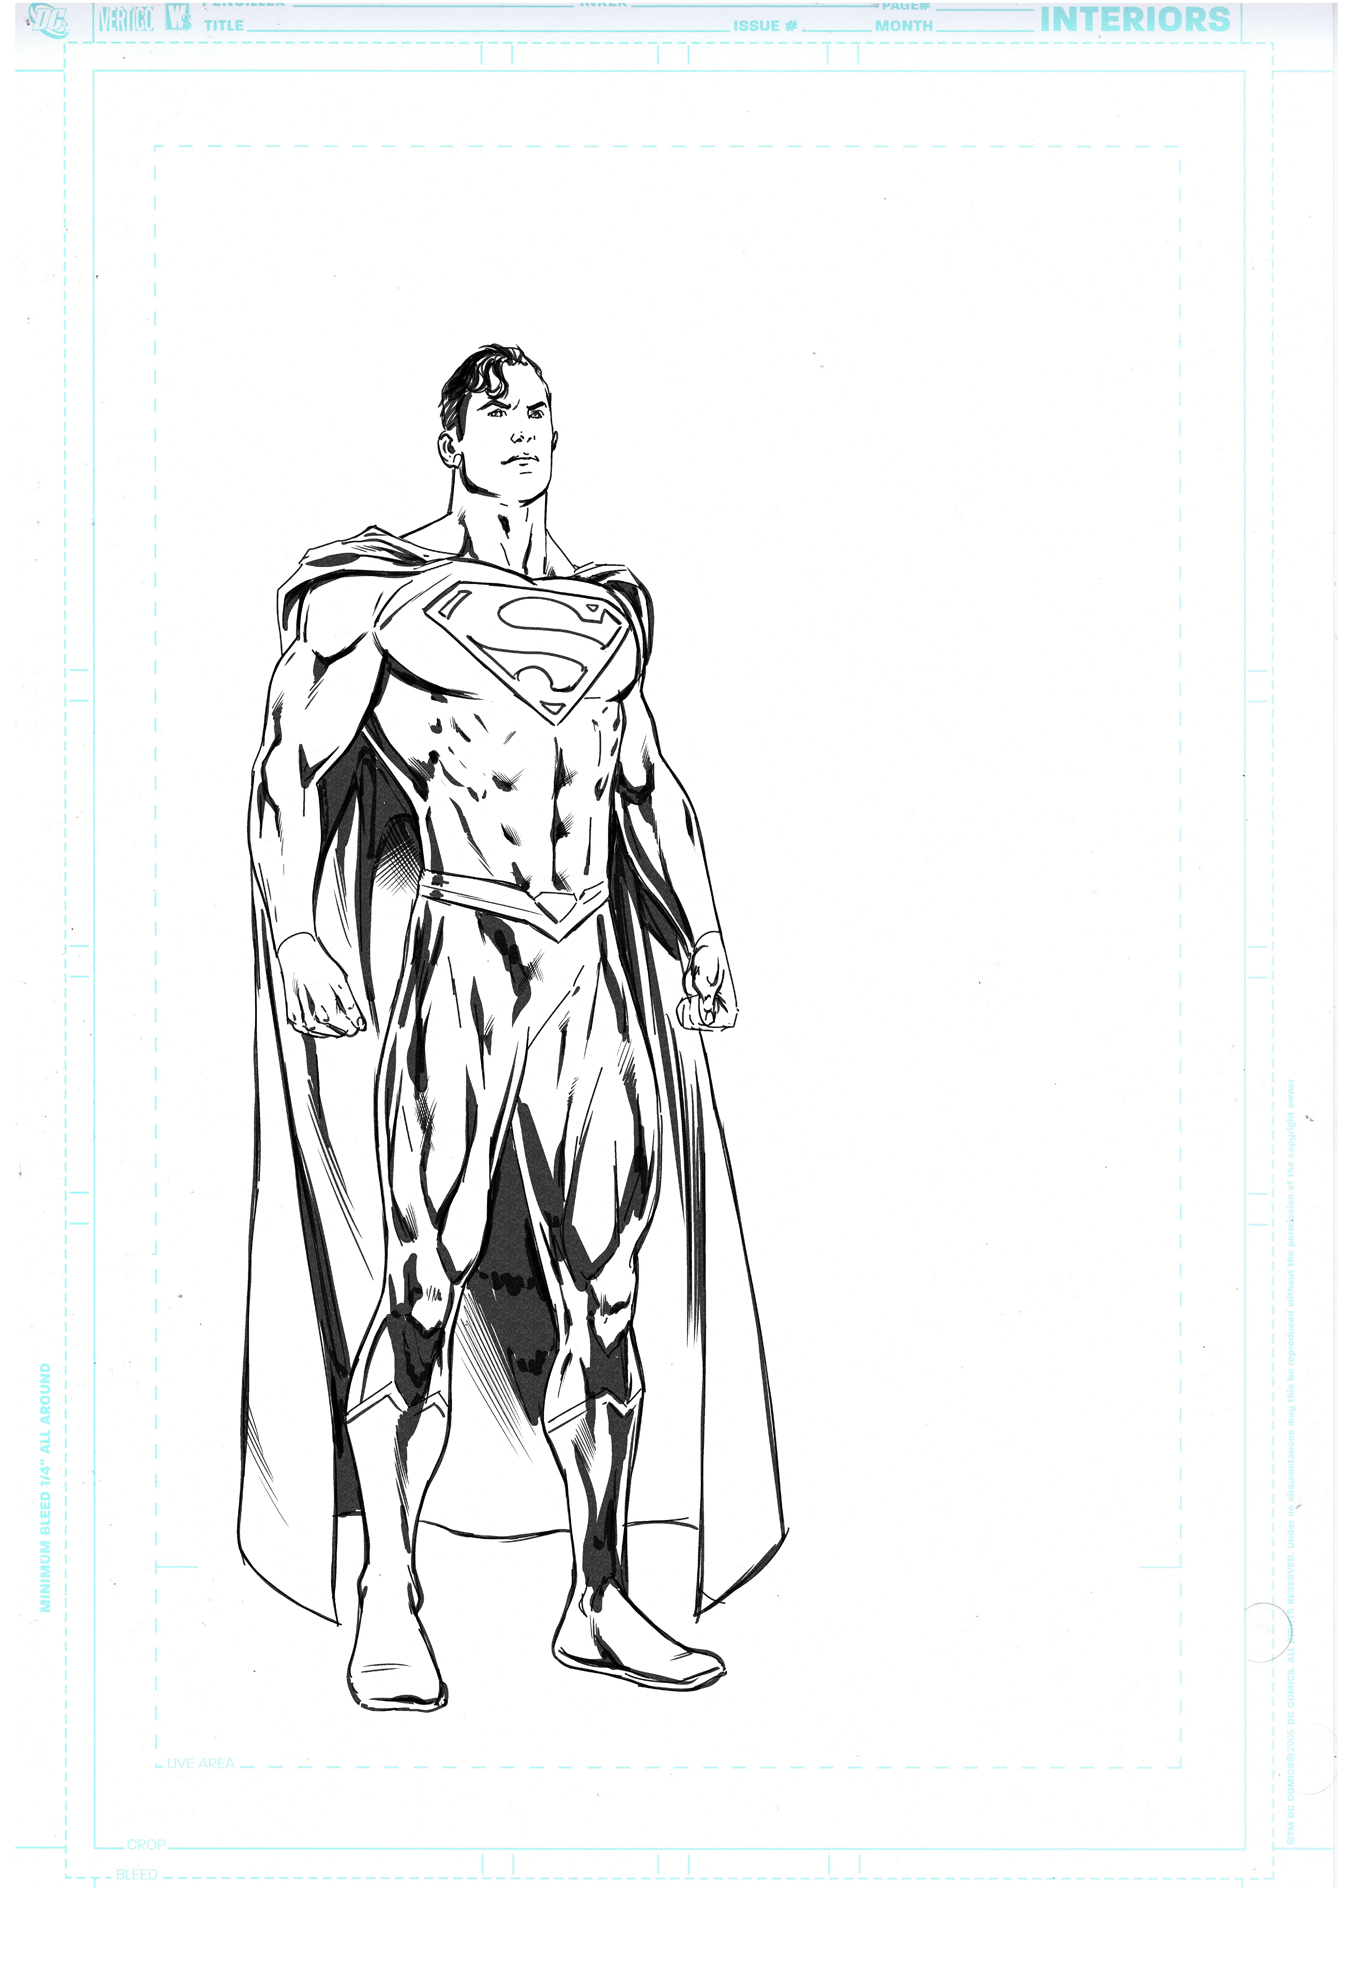 action comics cover 988 fig6.jpg